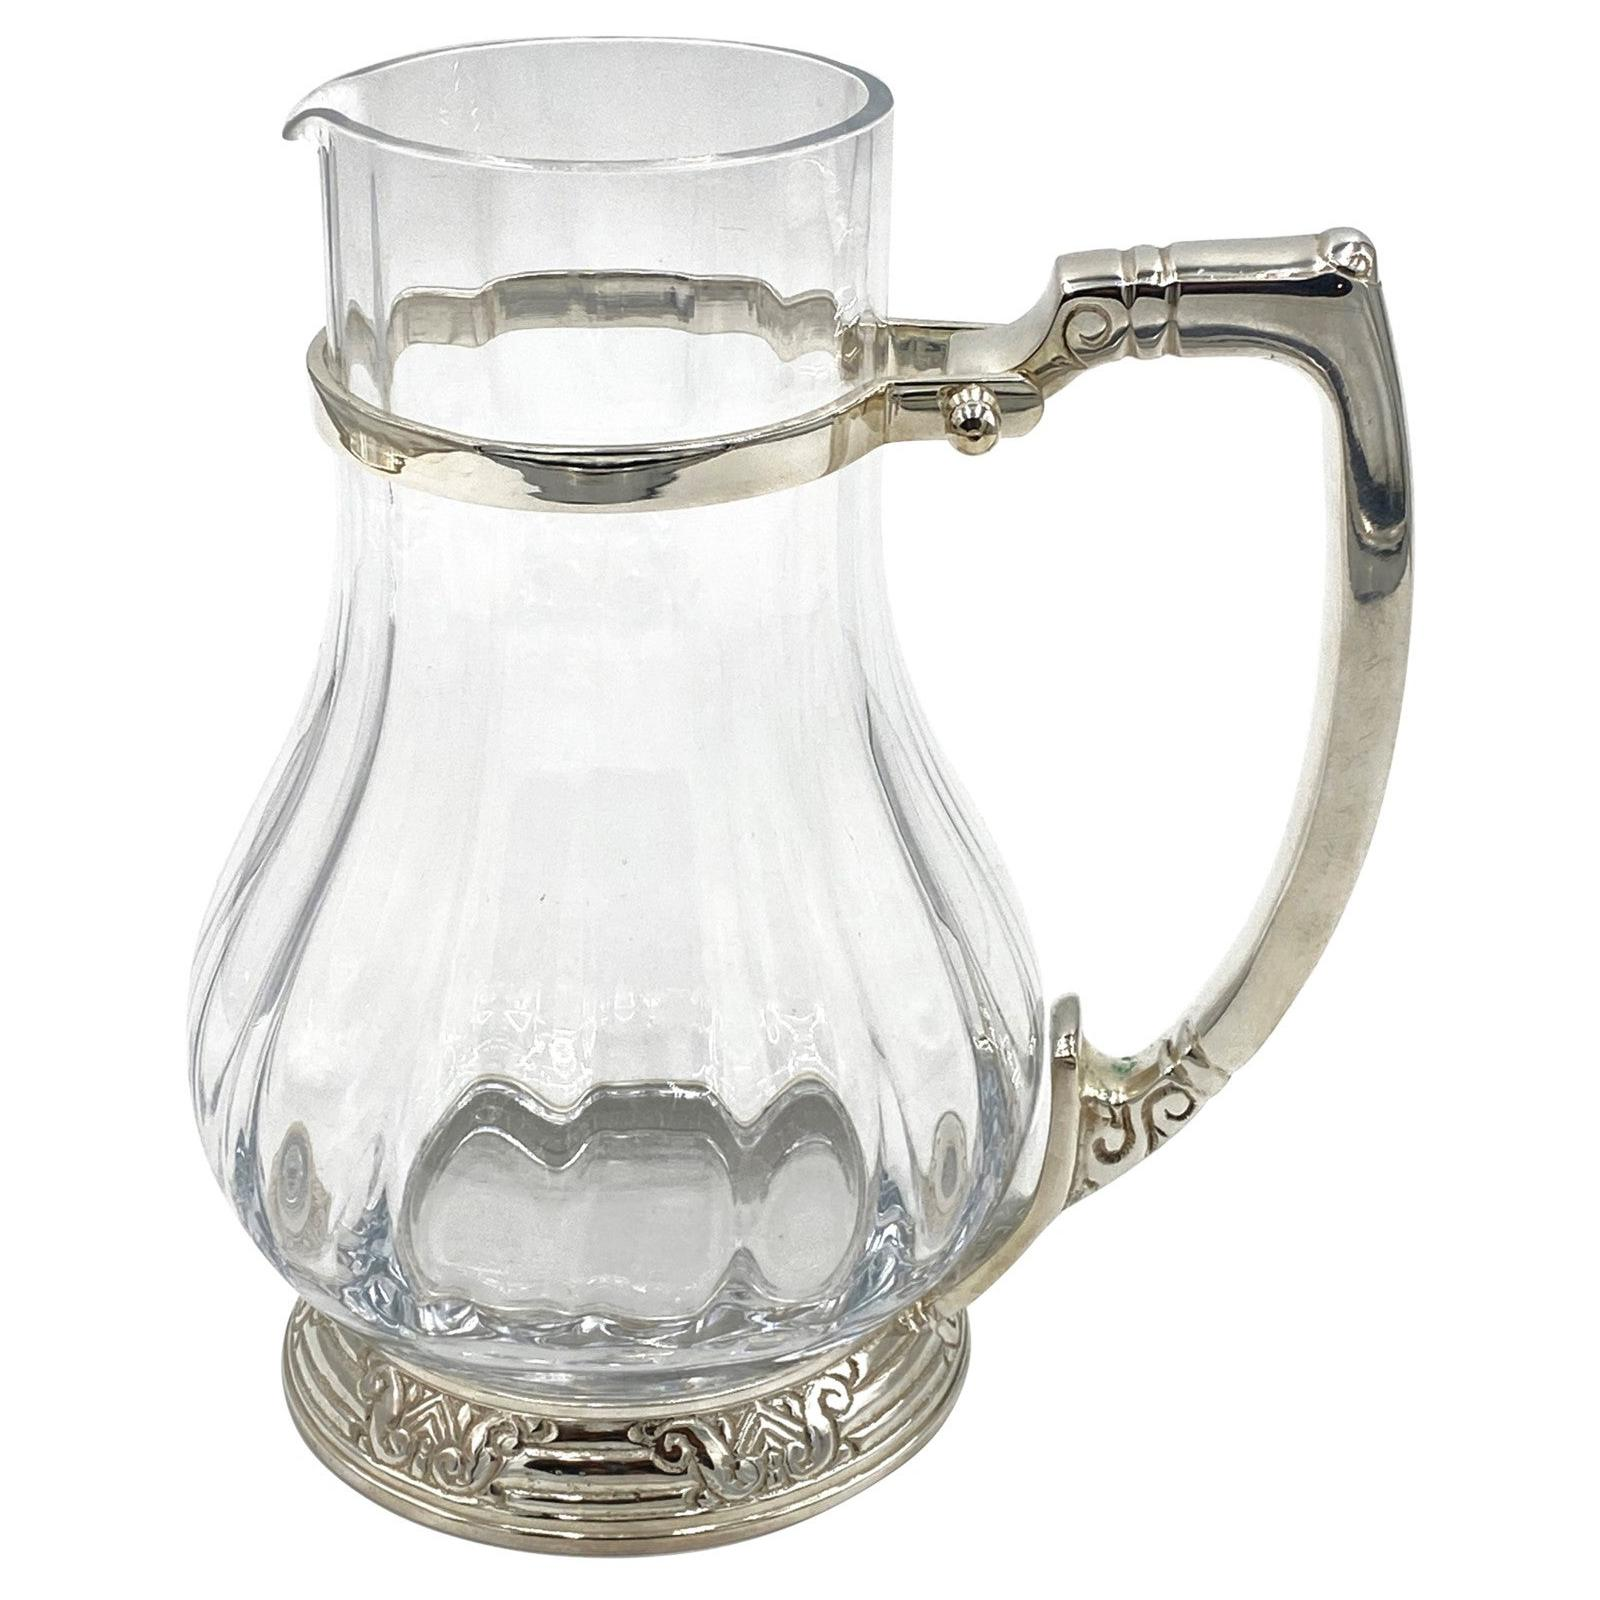 NYC Waldorf Astoria Hotel Silver Plated Water Pitcher Art Deco Style